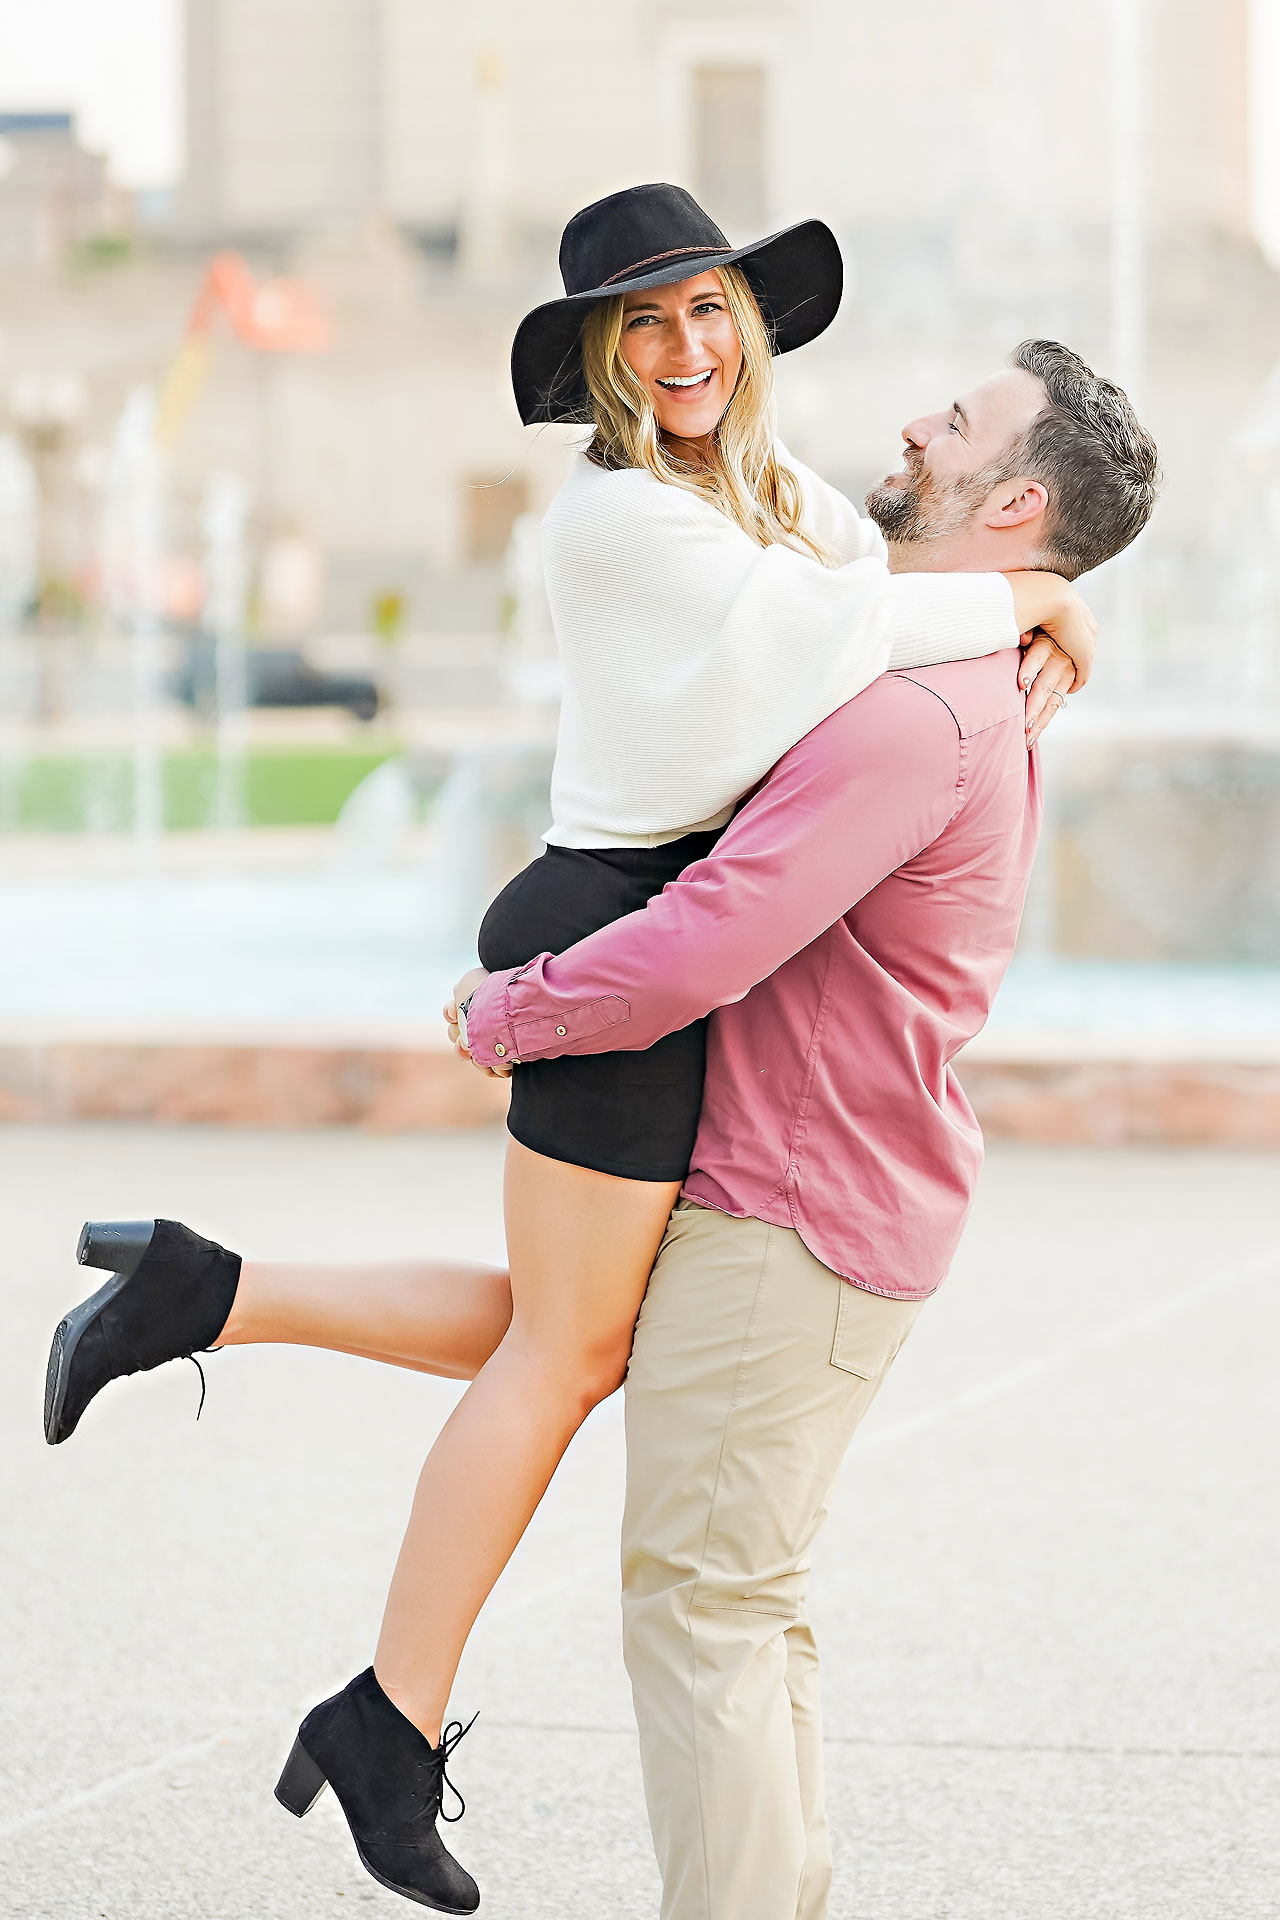 Kendall Jake Downtown Indianapolis Engagement Session 060